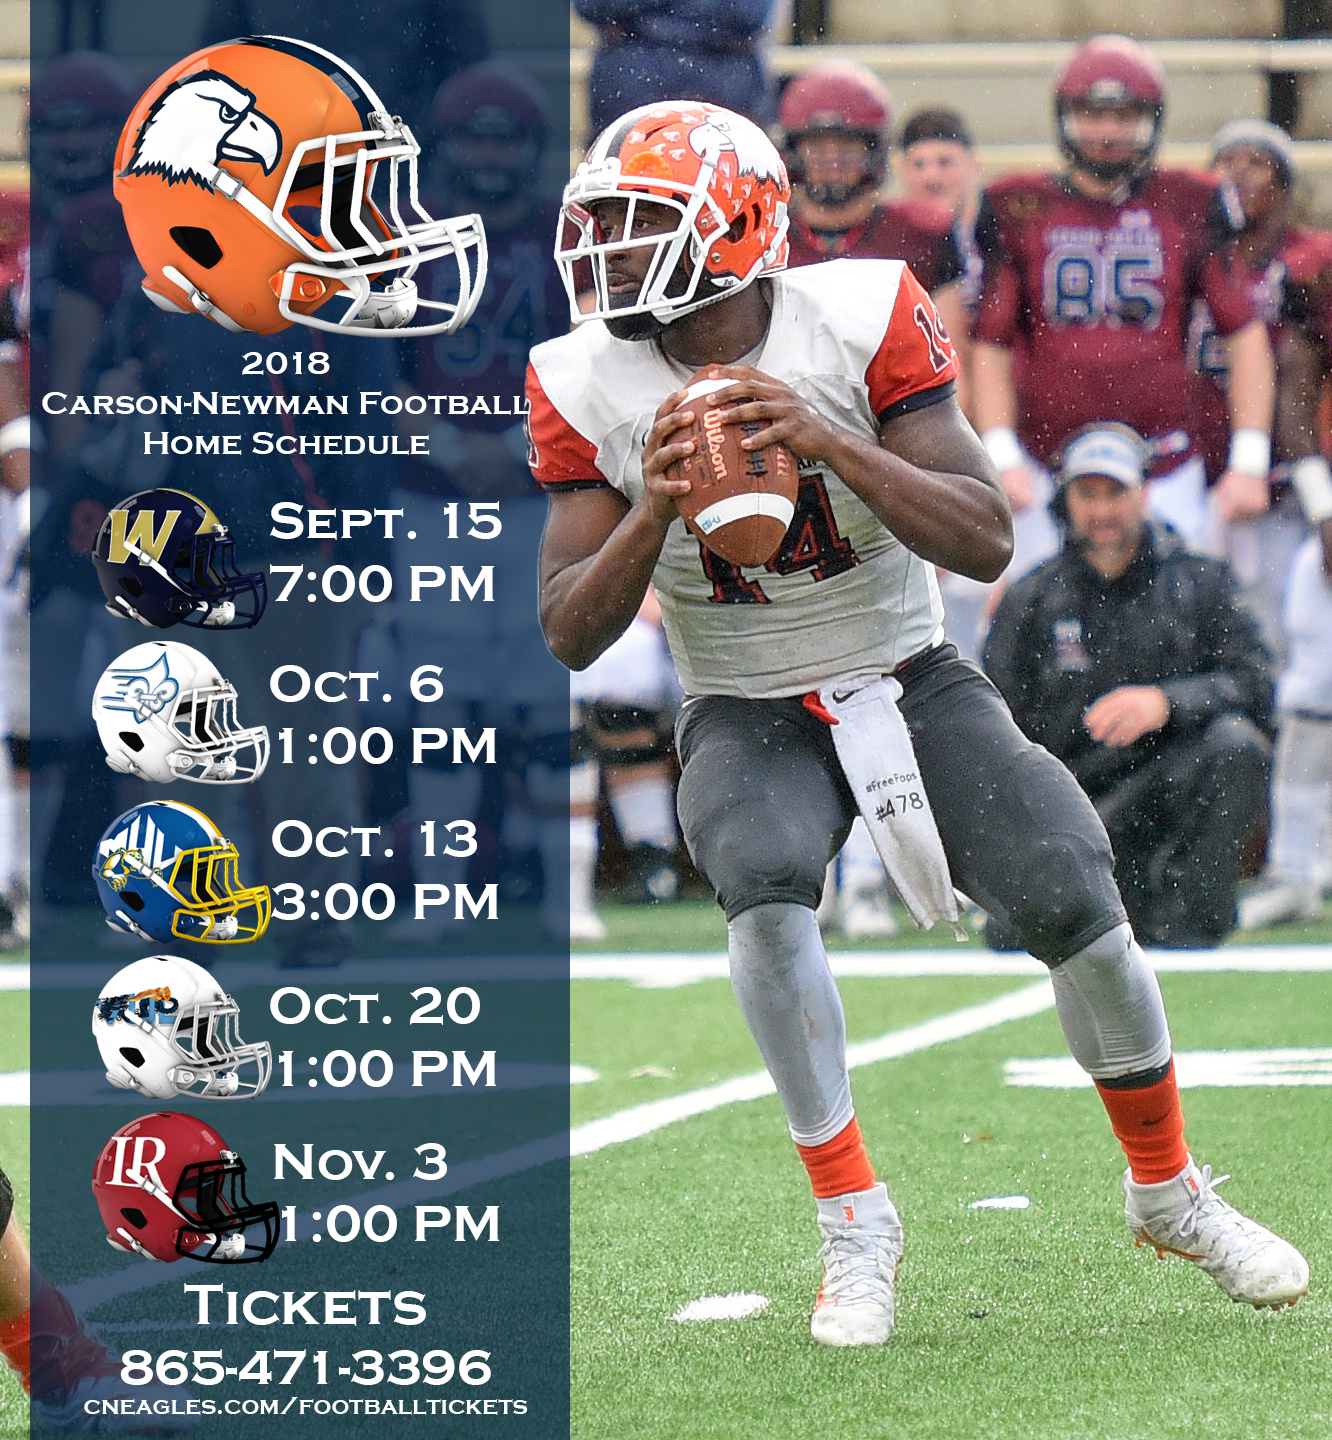 Season tickets on sale for 2018 Carson-Newman football schedule